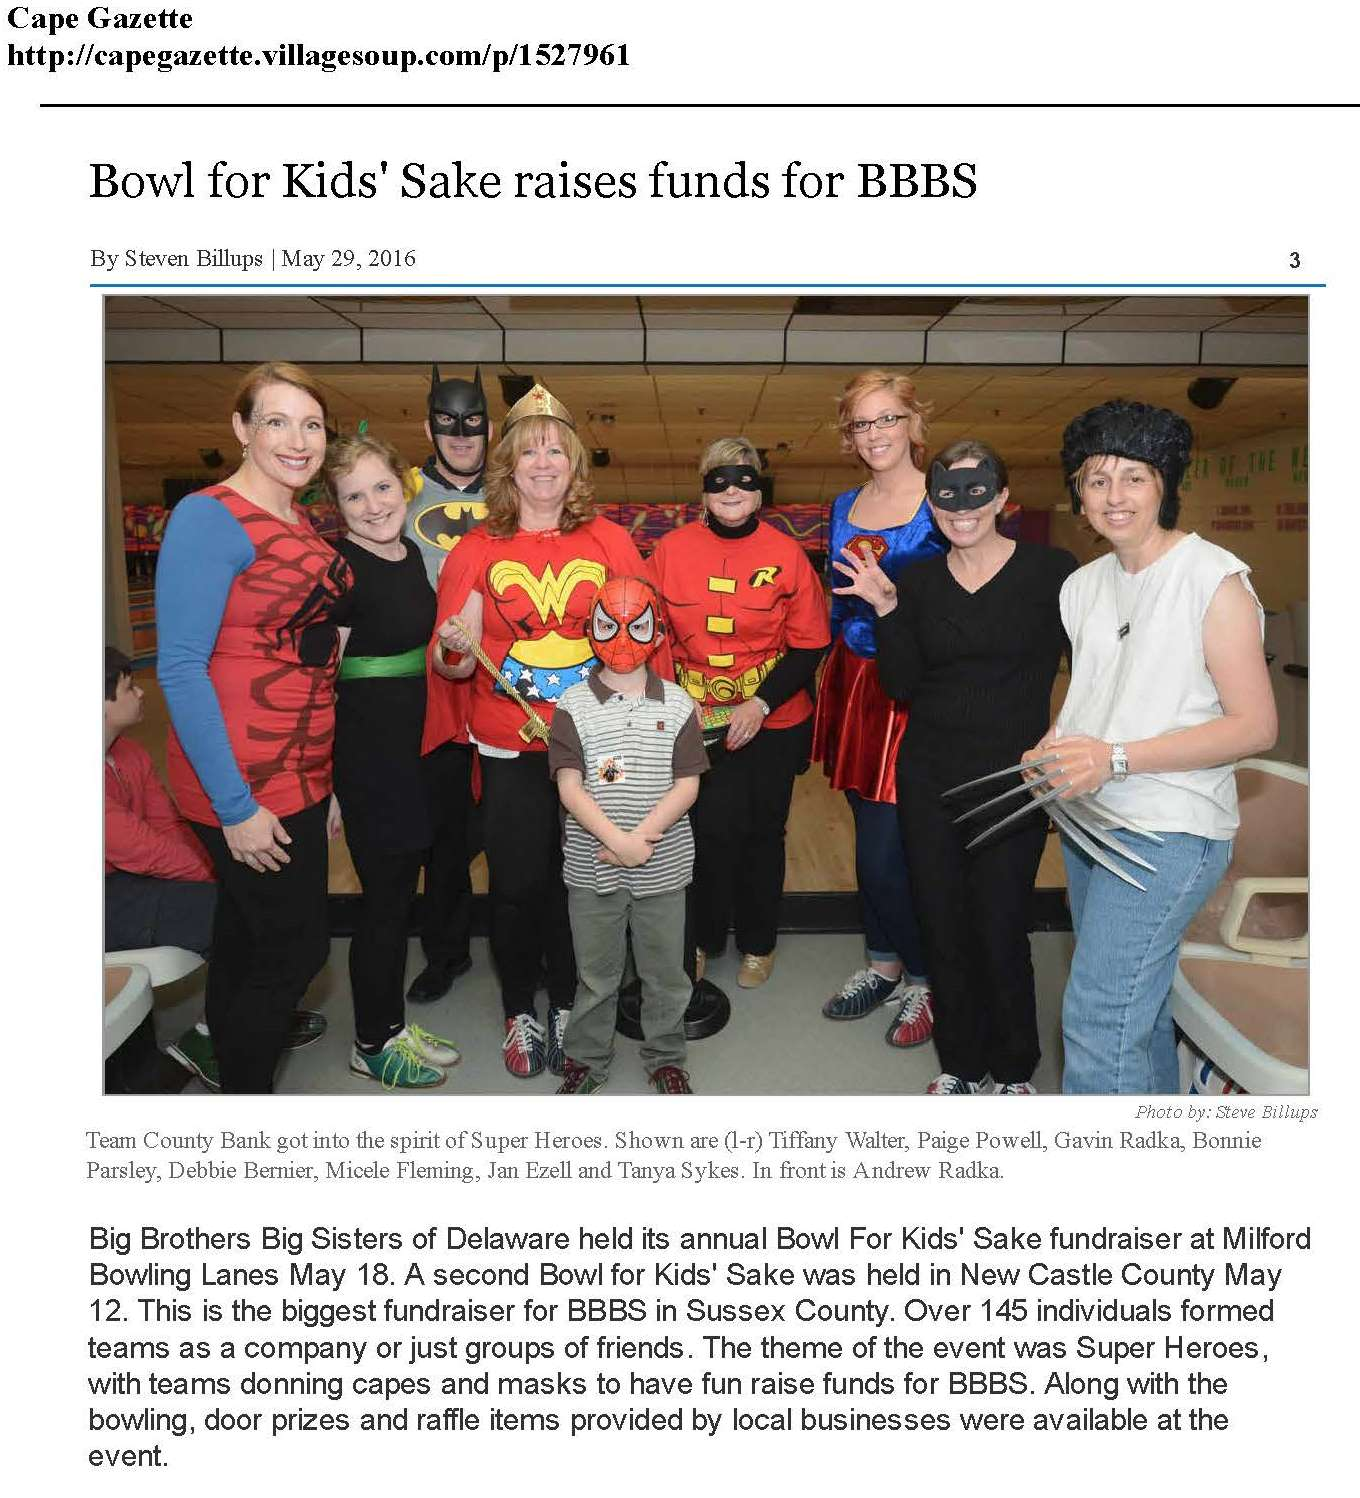 Bowl for Kids' Sake raises funds for BBBSSteven Billups - CapeGazette_Page_1